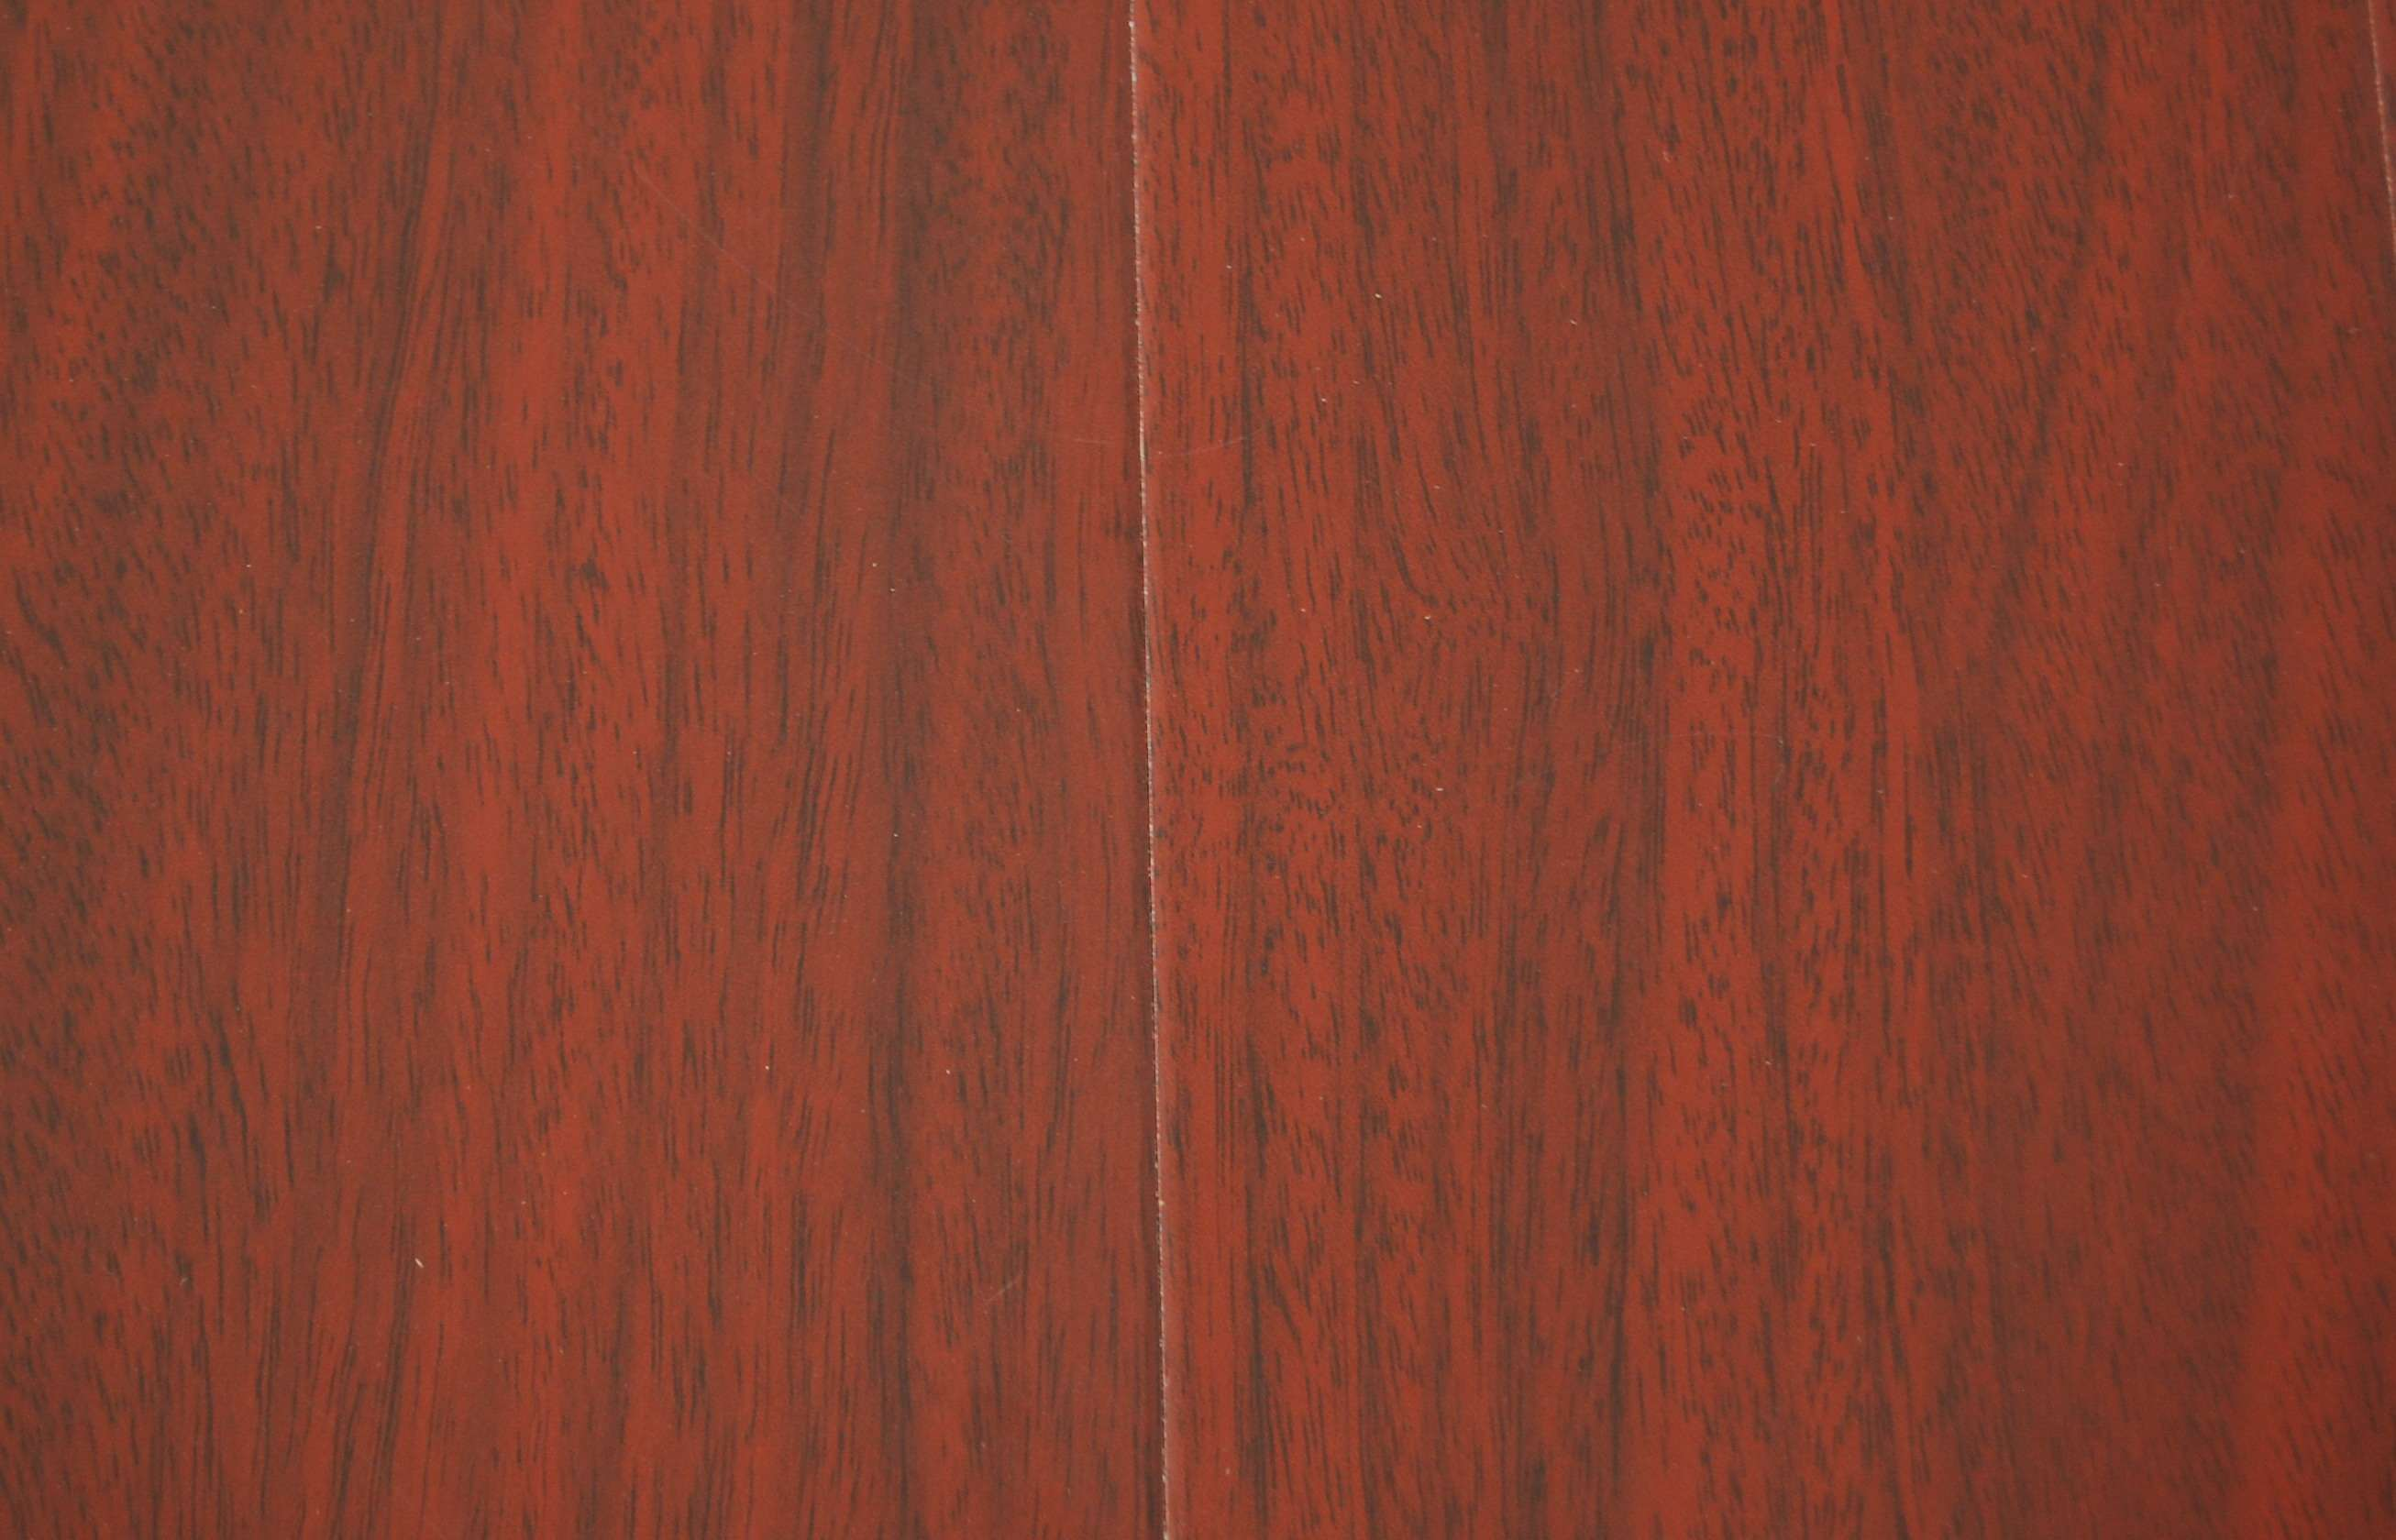 Formica laminate wood flooring images for Hardwood laminate